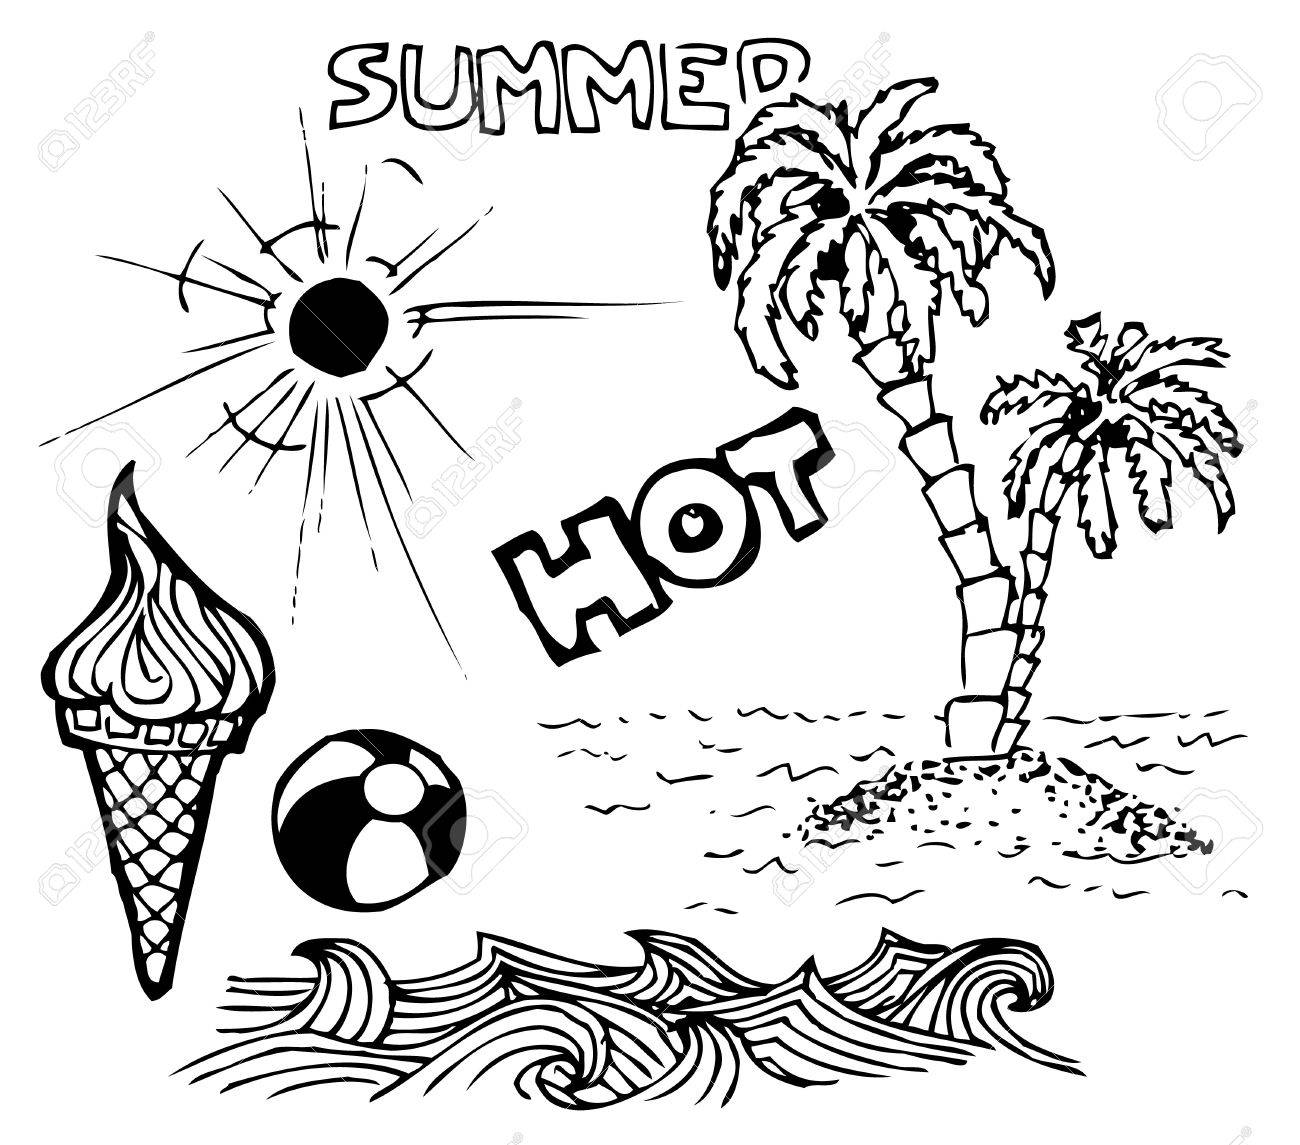 Summer doodle elements - sun, ocean, palm trees, ice cream, ball Stock Vector - 7089568